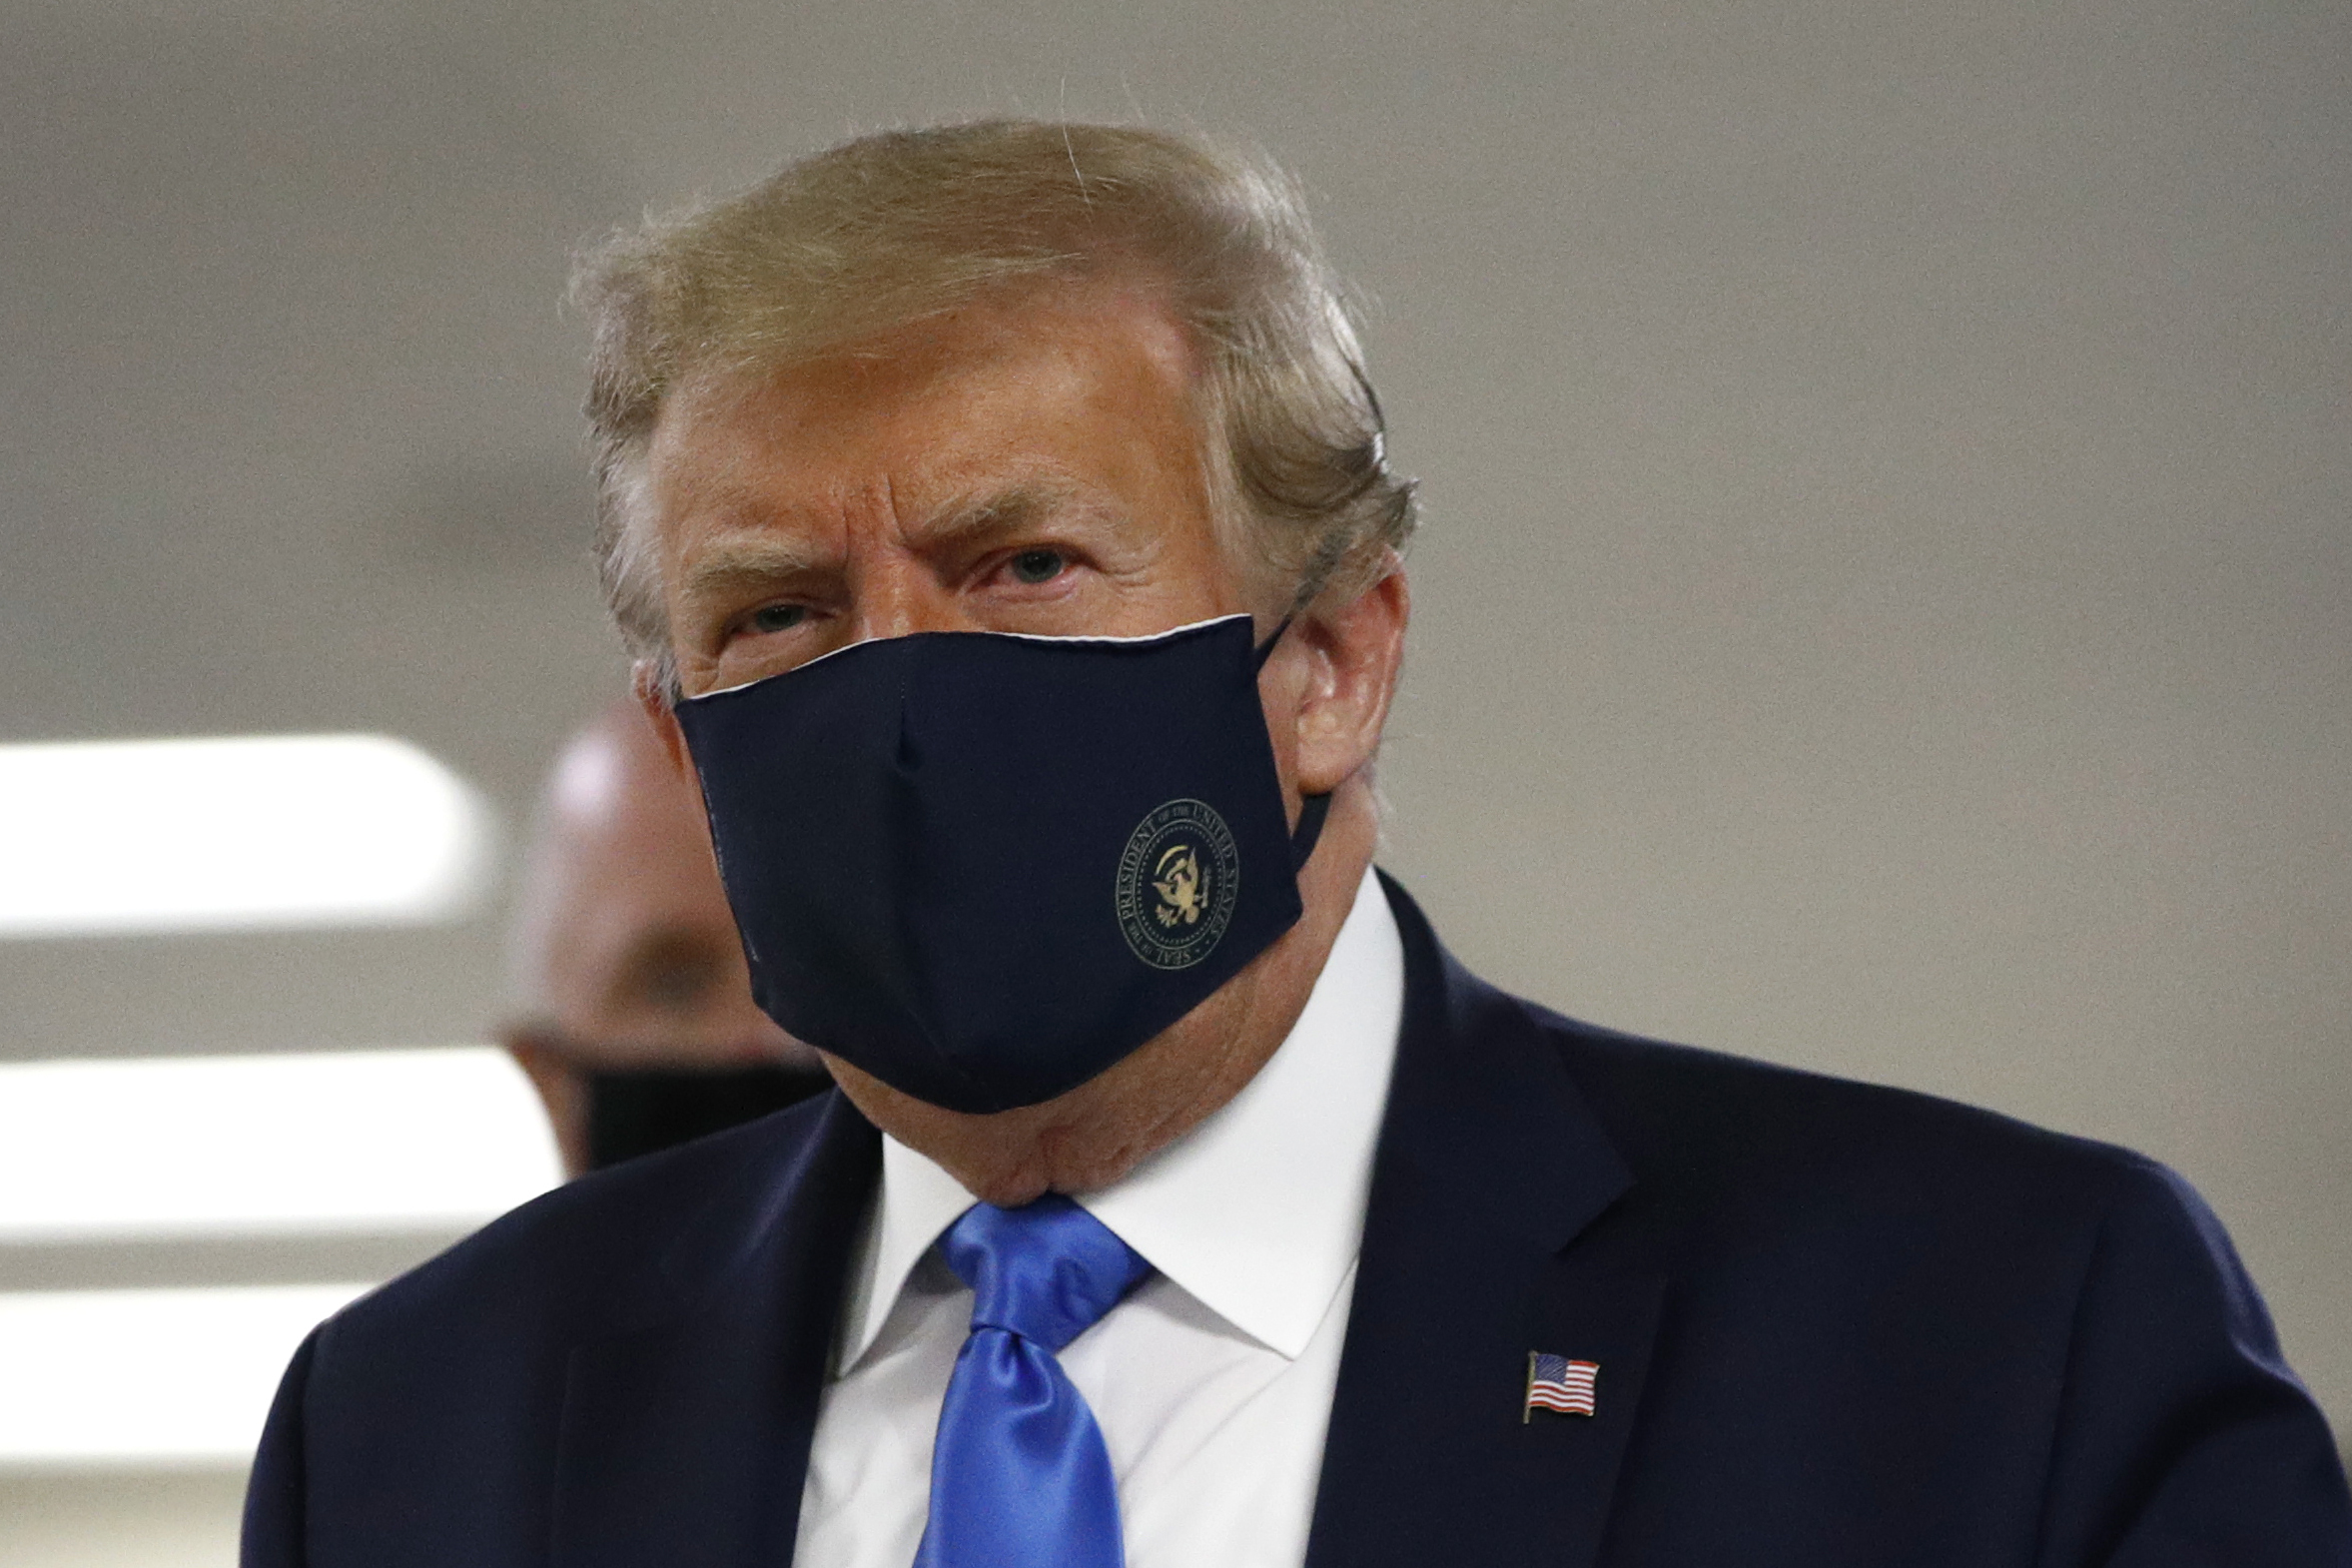 Donald Trump wears a mask for the first time